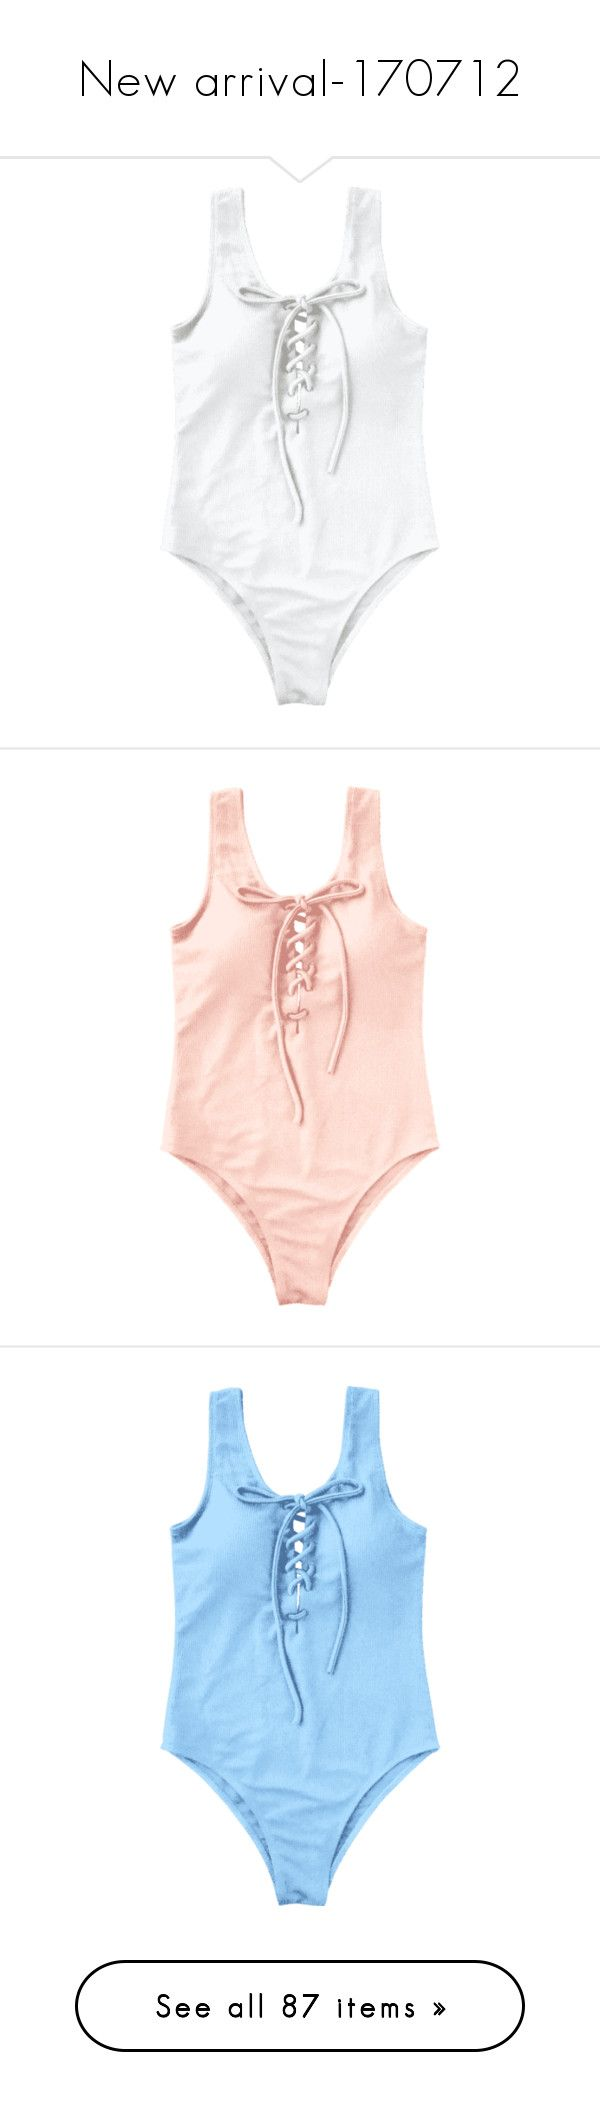 """New arrival-170712"" by zaful ❤ liked on Polyvore featuring swimwear, one-piece swimsuits, white one piece bathing suit, white swimsuit, lace up one piece bathing suit, lace up swimsuit, one-piece swimwear, padded swimwear, padded bathing suits and lace up bathing suit"